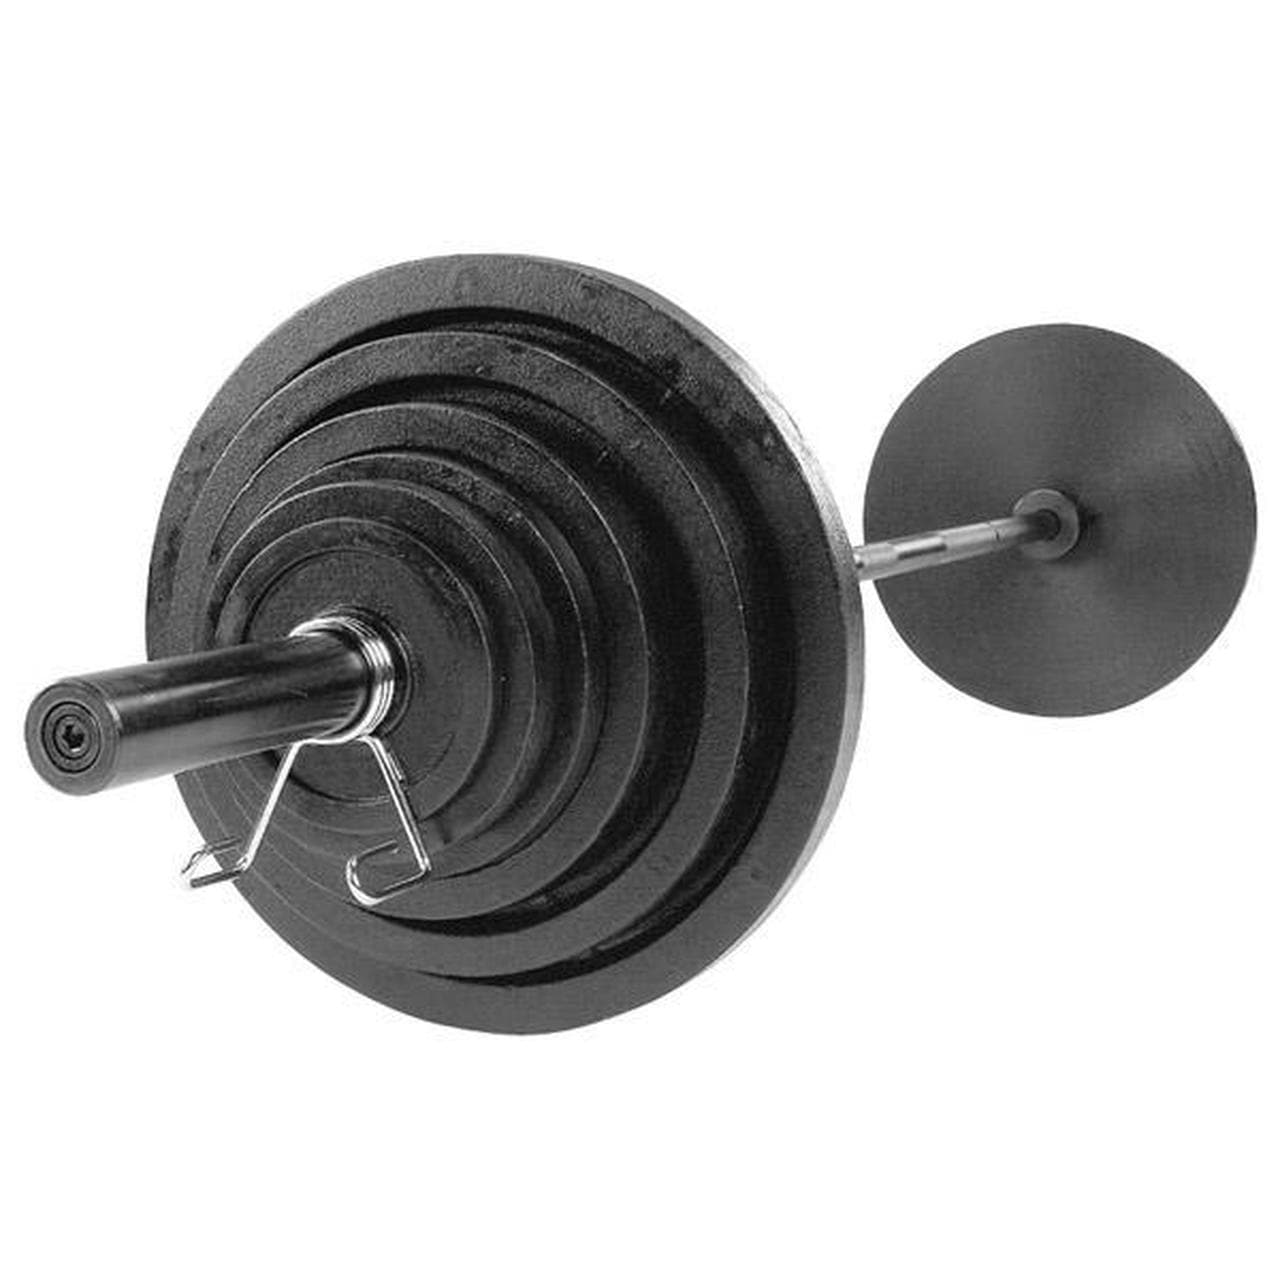 Body-Solid Cast Iron Olympic Weight Set with Bar plate Body-Solid Iron